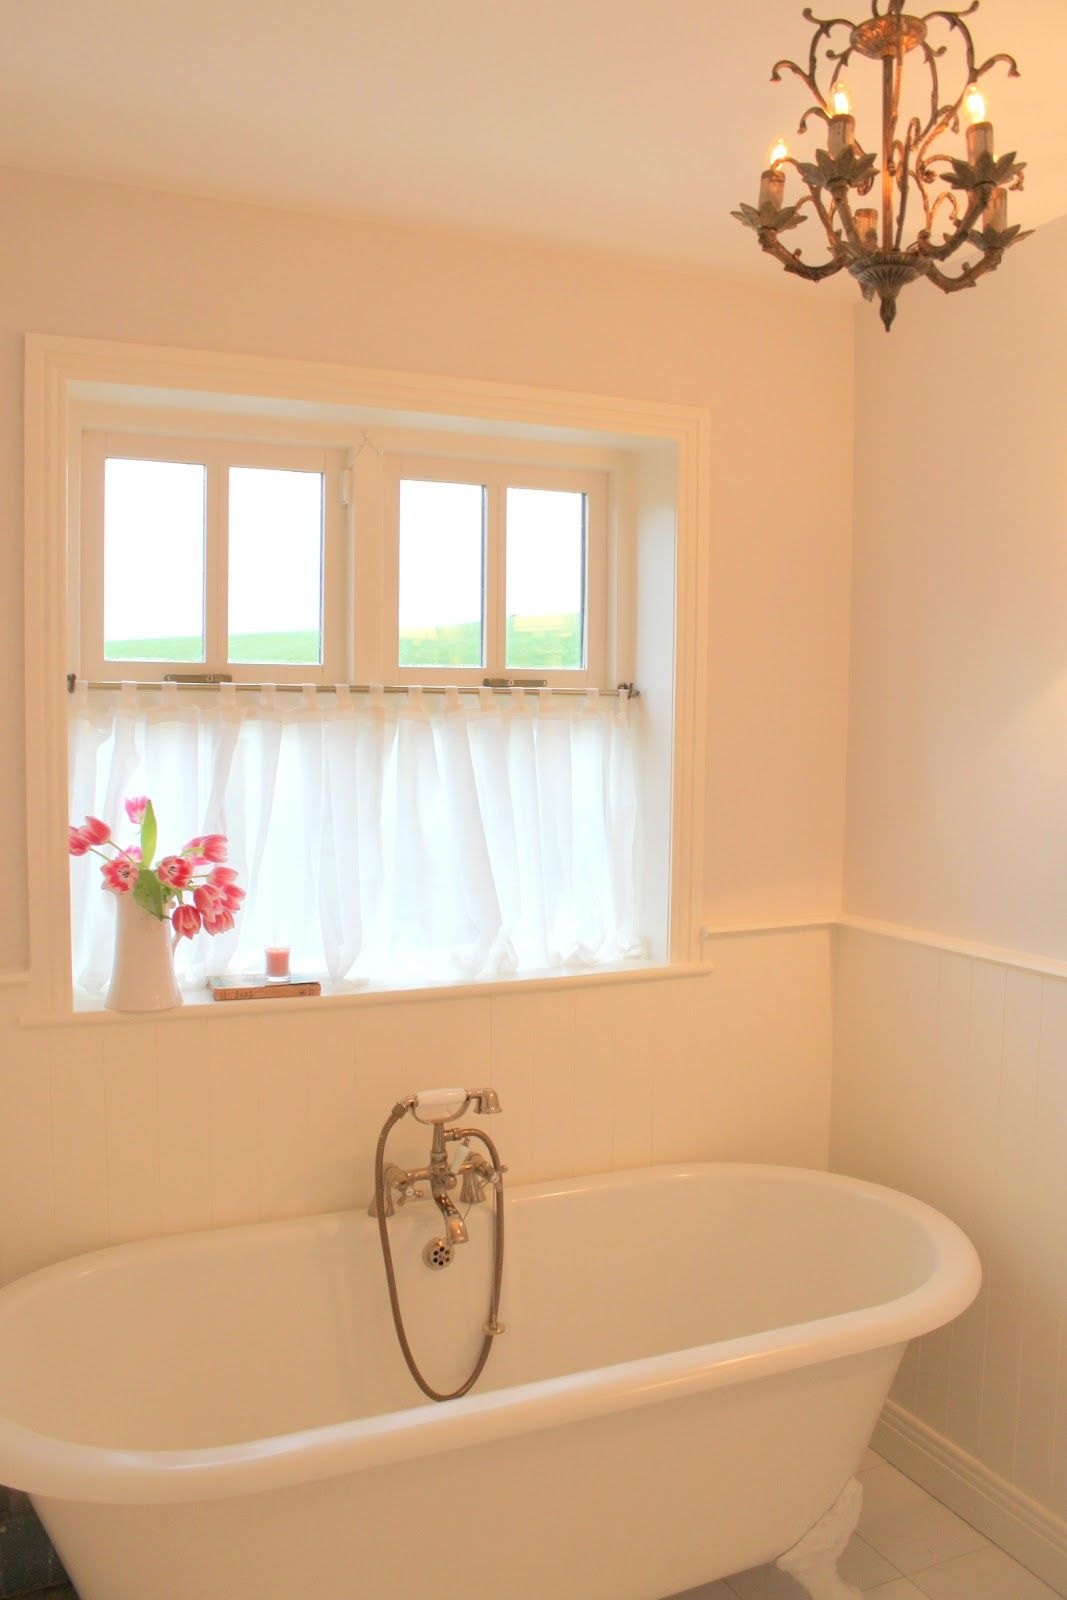 Before And After La Vie En Rose Bathroom Pinterest - Cafe curtains for bathroom for bathroom decor ideas